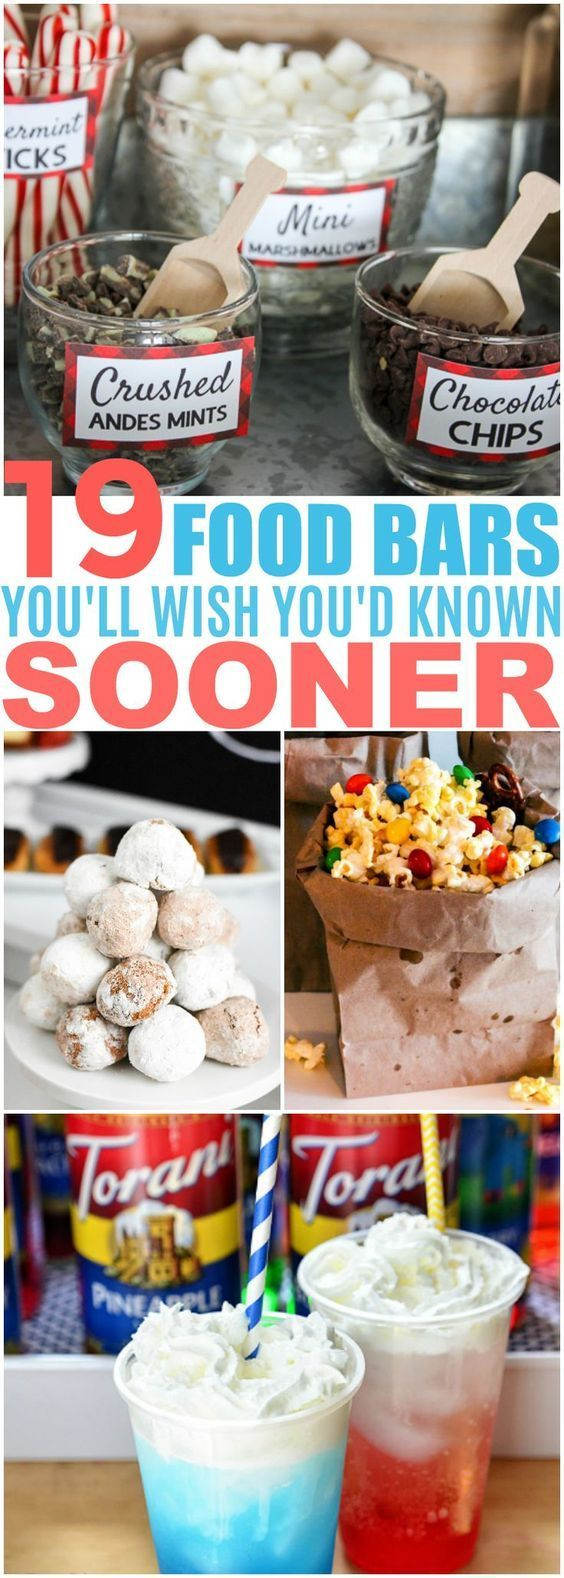 23 Stunning Party Food Bars for Your Next Big Occasion